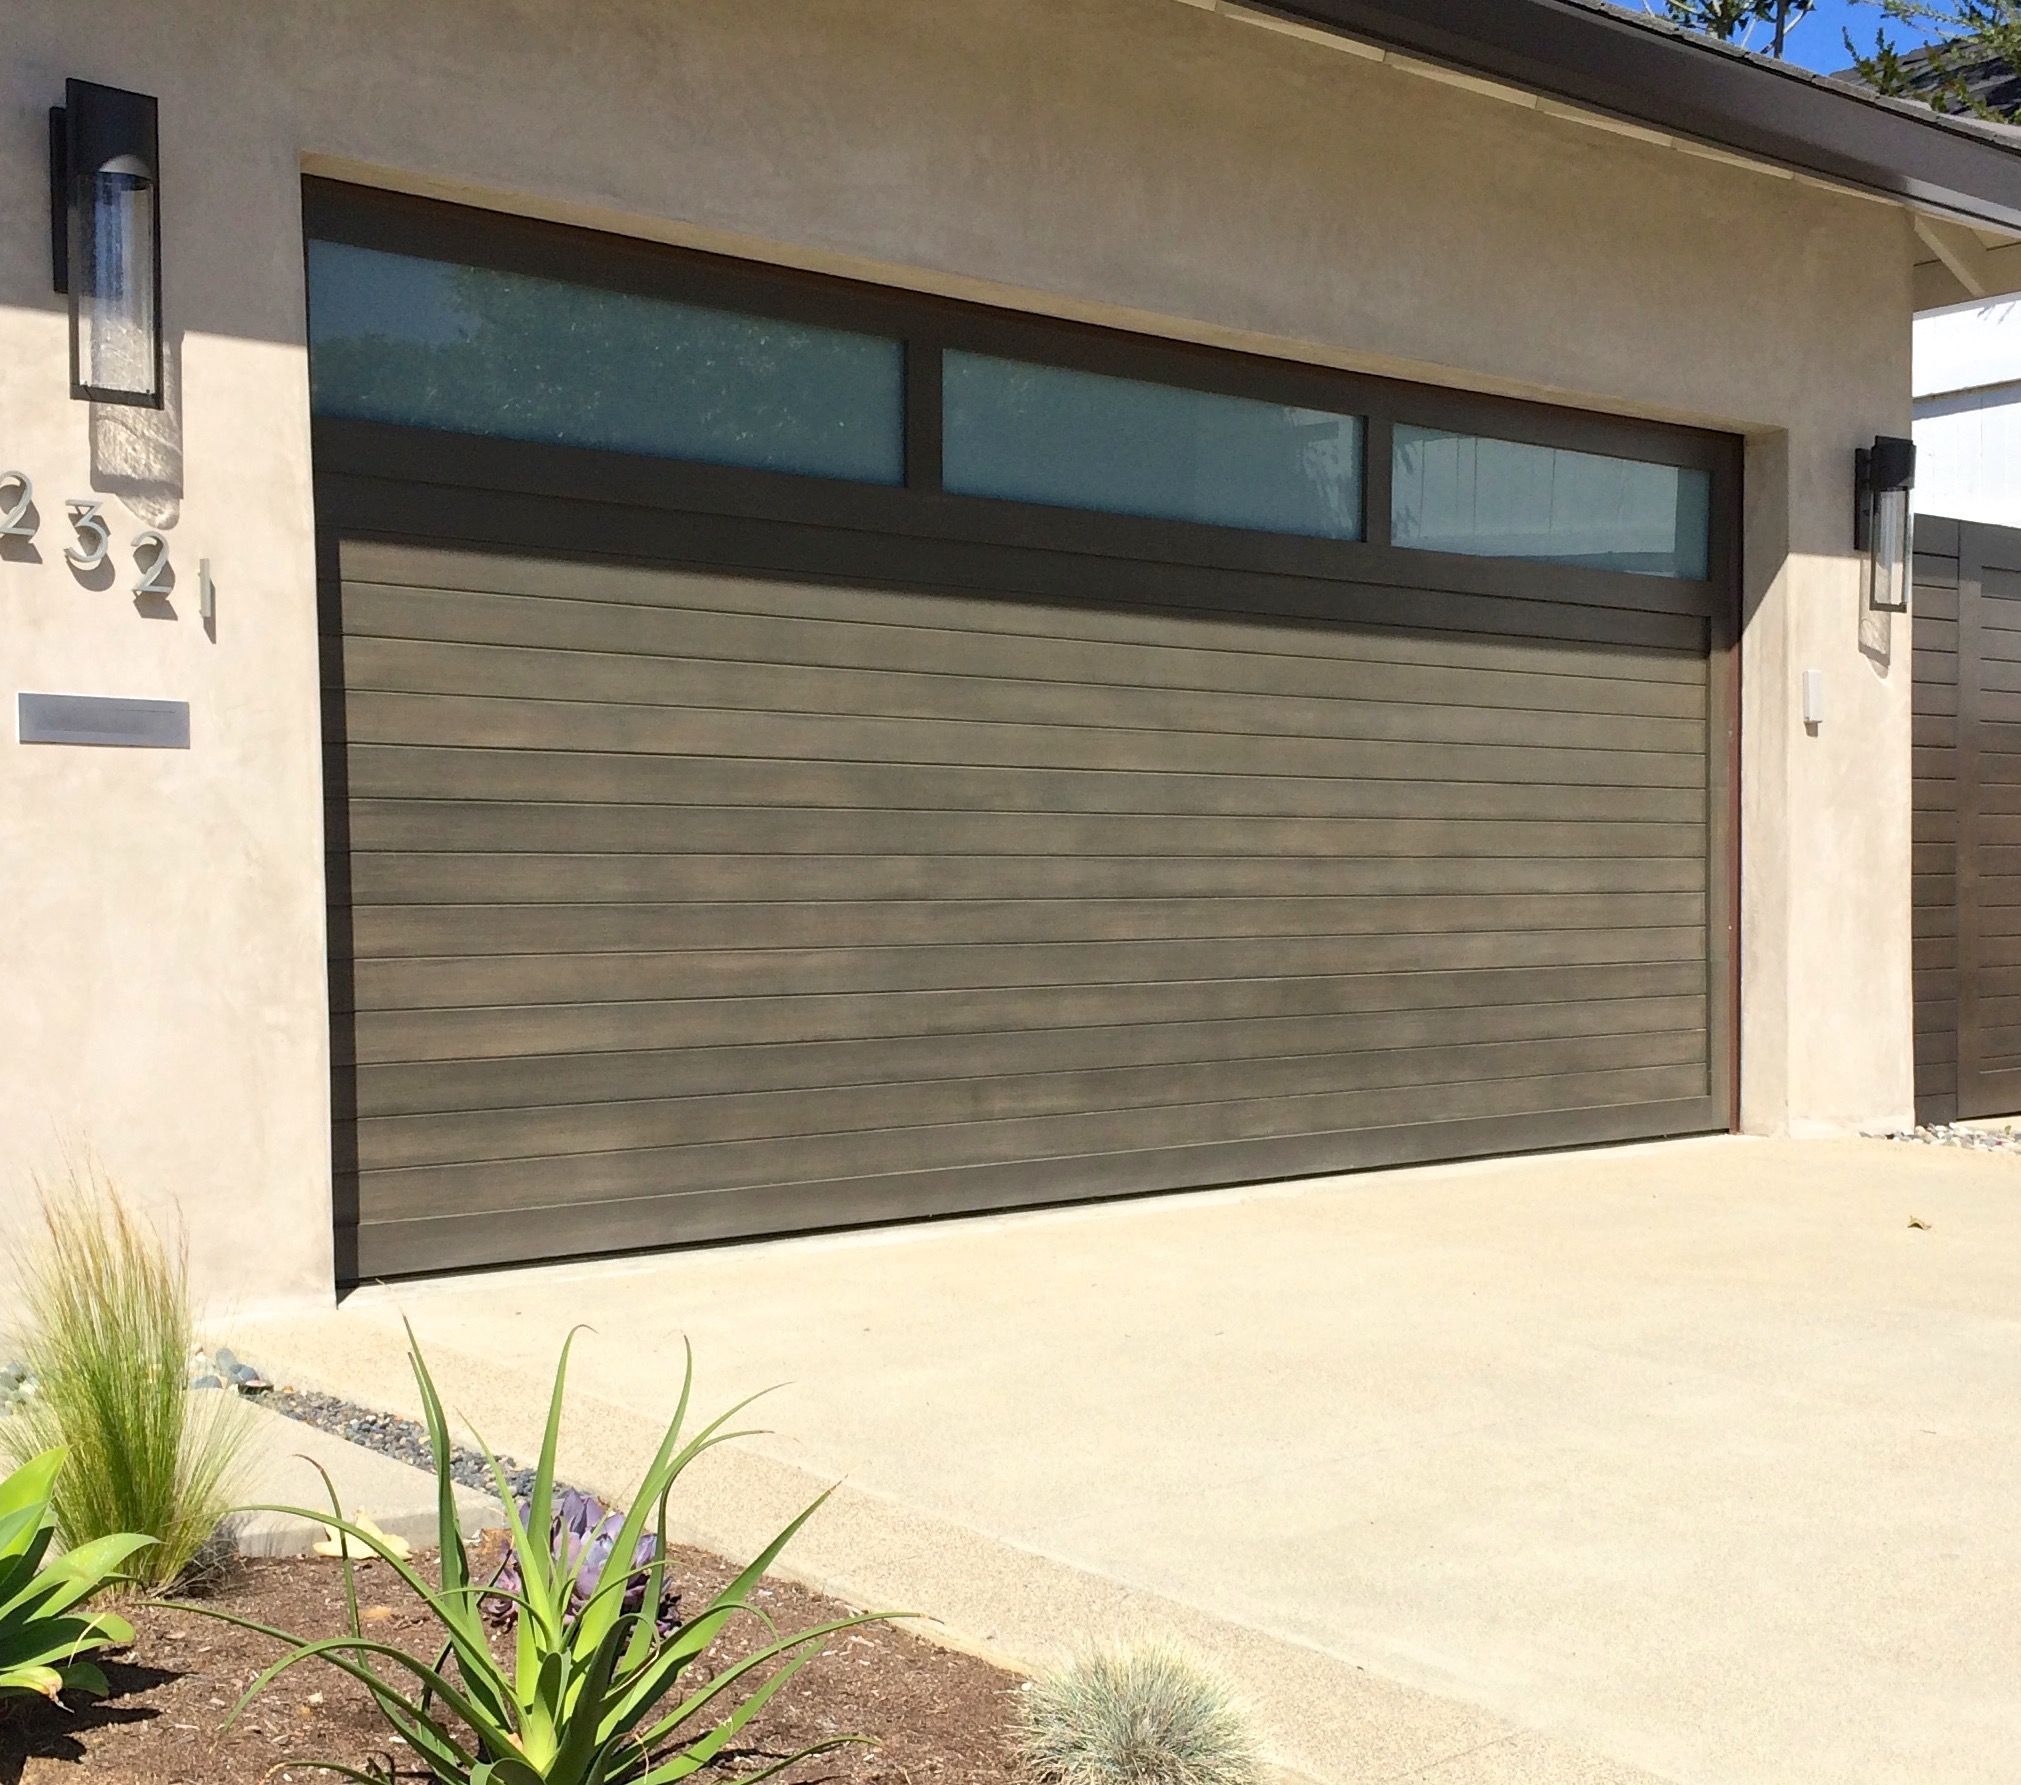 Awesome Ziegler Garage Doors Inc. Makes Some Awesome Modern Garage Doors Than Can  Finish The Contemporary